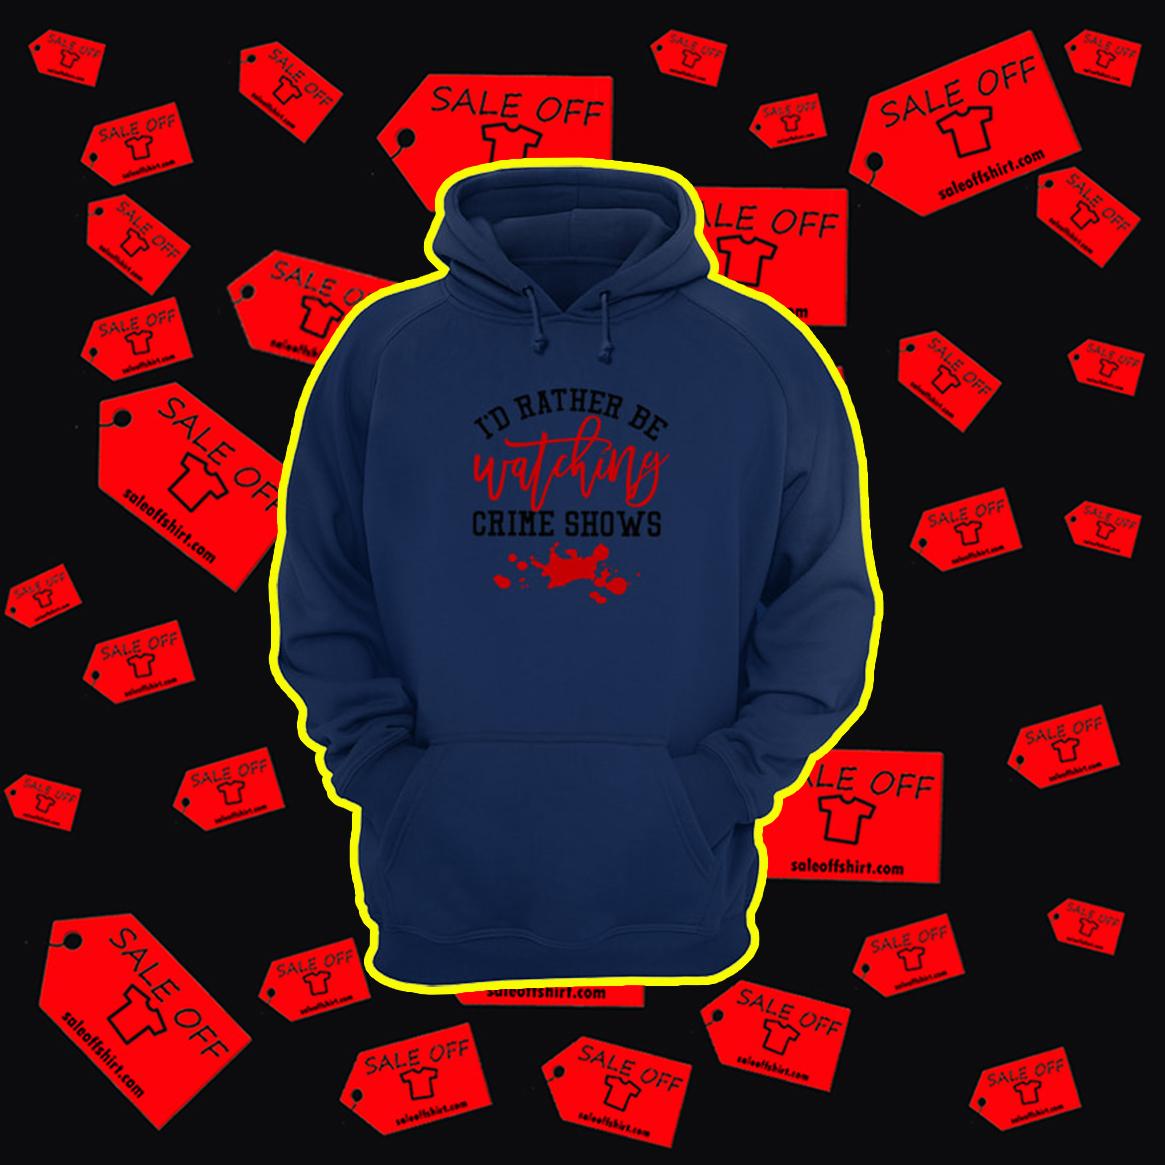 I'd Rather Be Watching Crime Shows hoodie